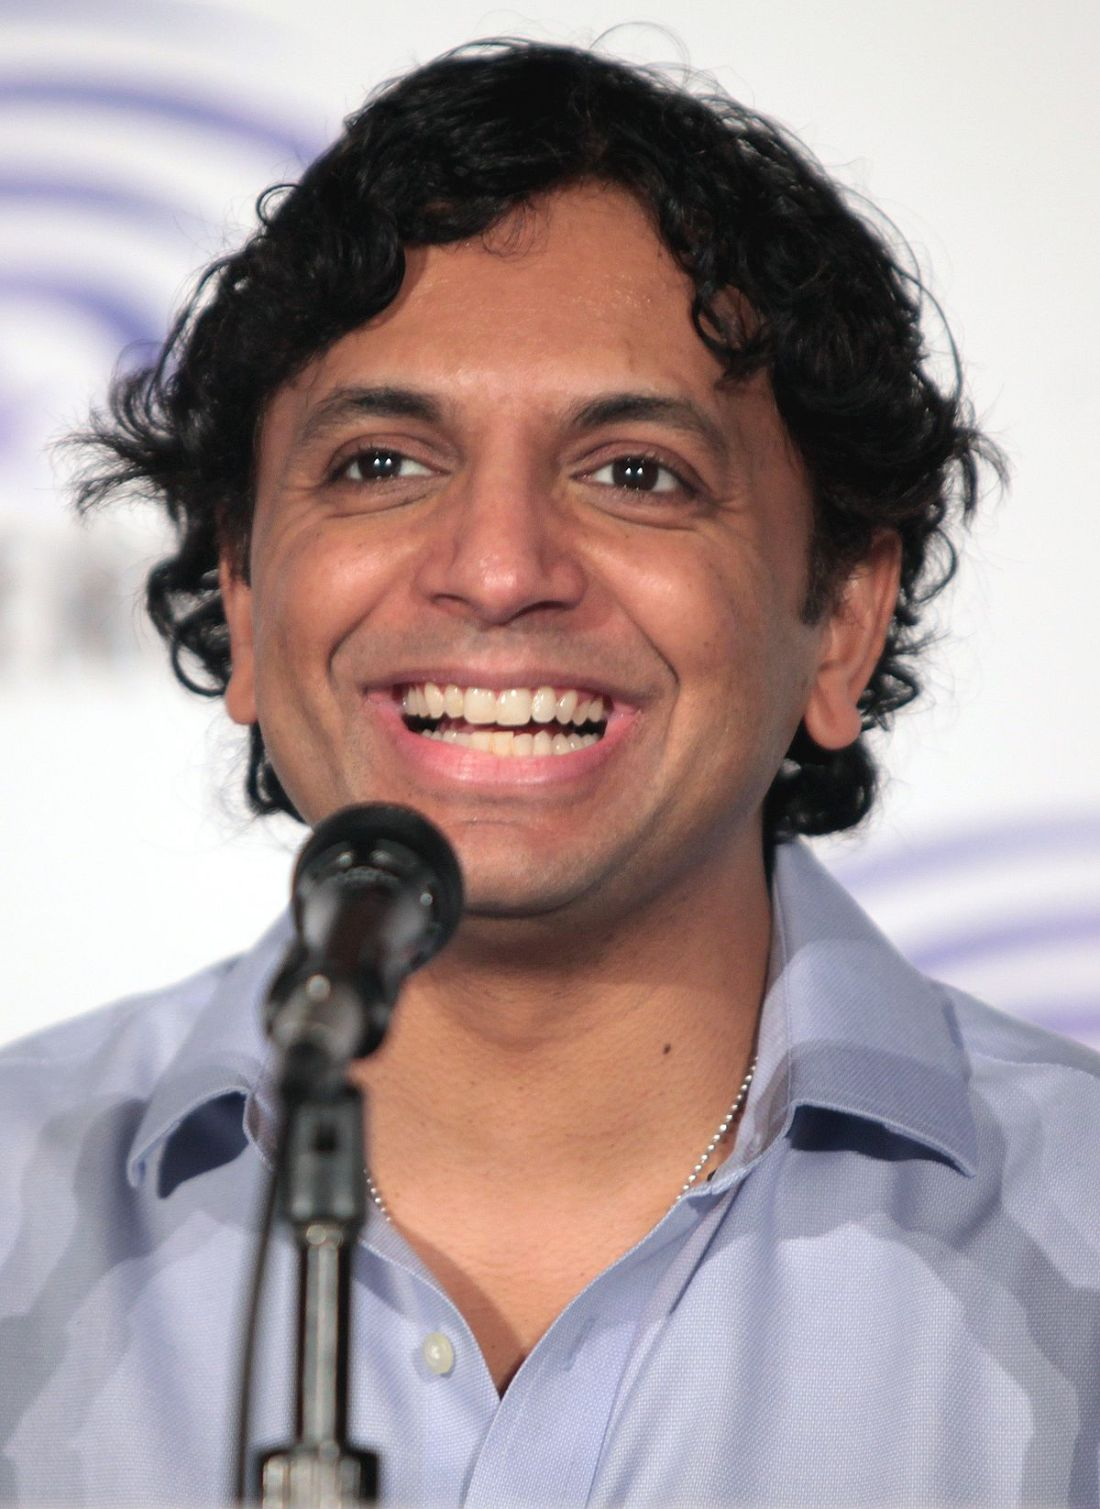 M._Night_Shyamalan_by_Gage_Skidmore